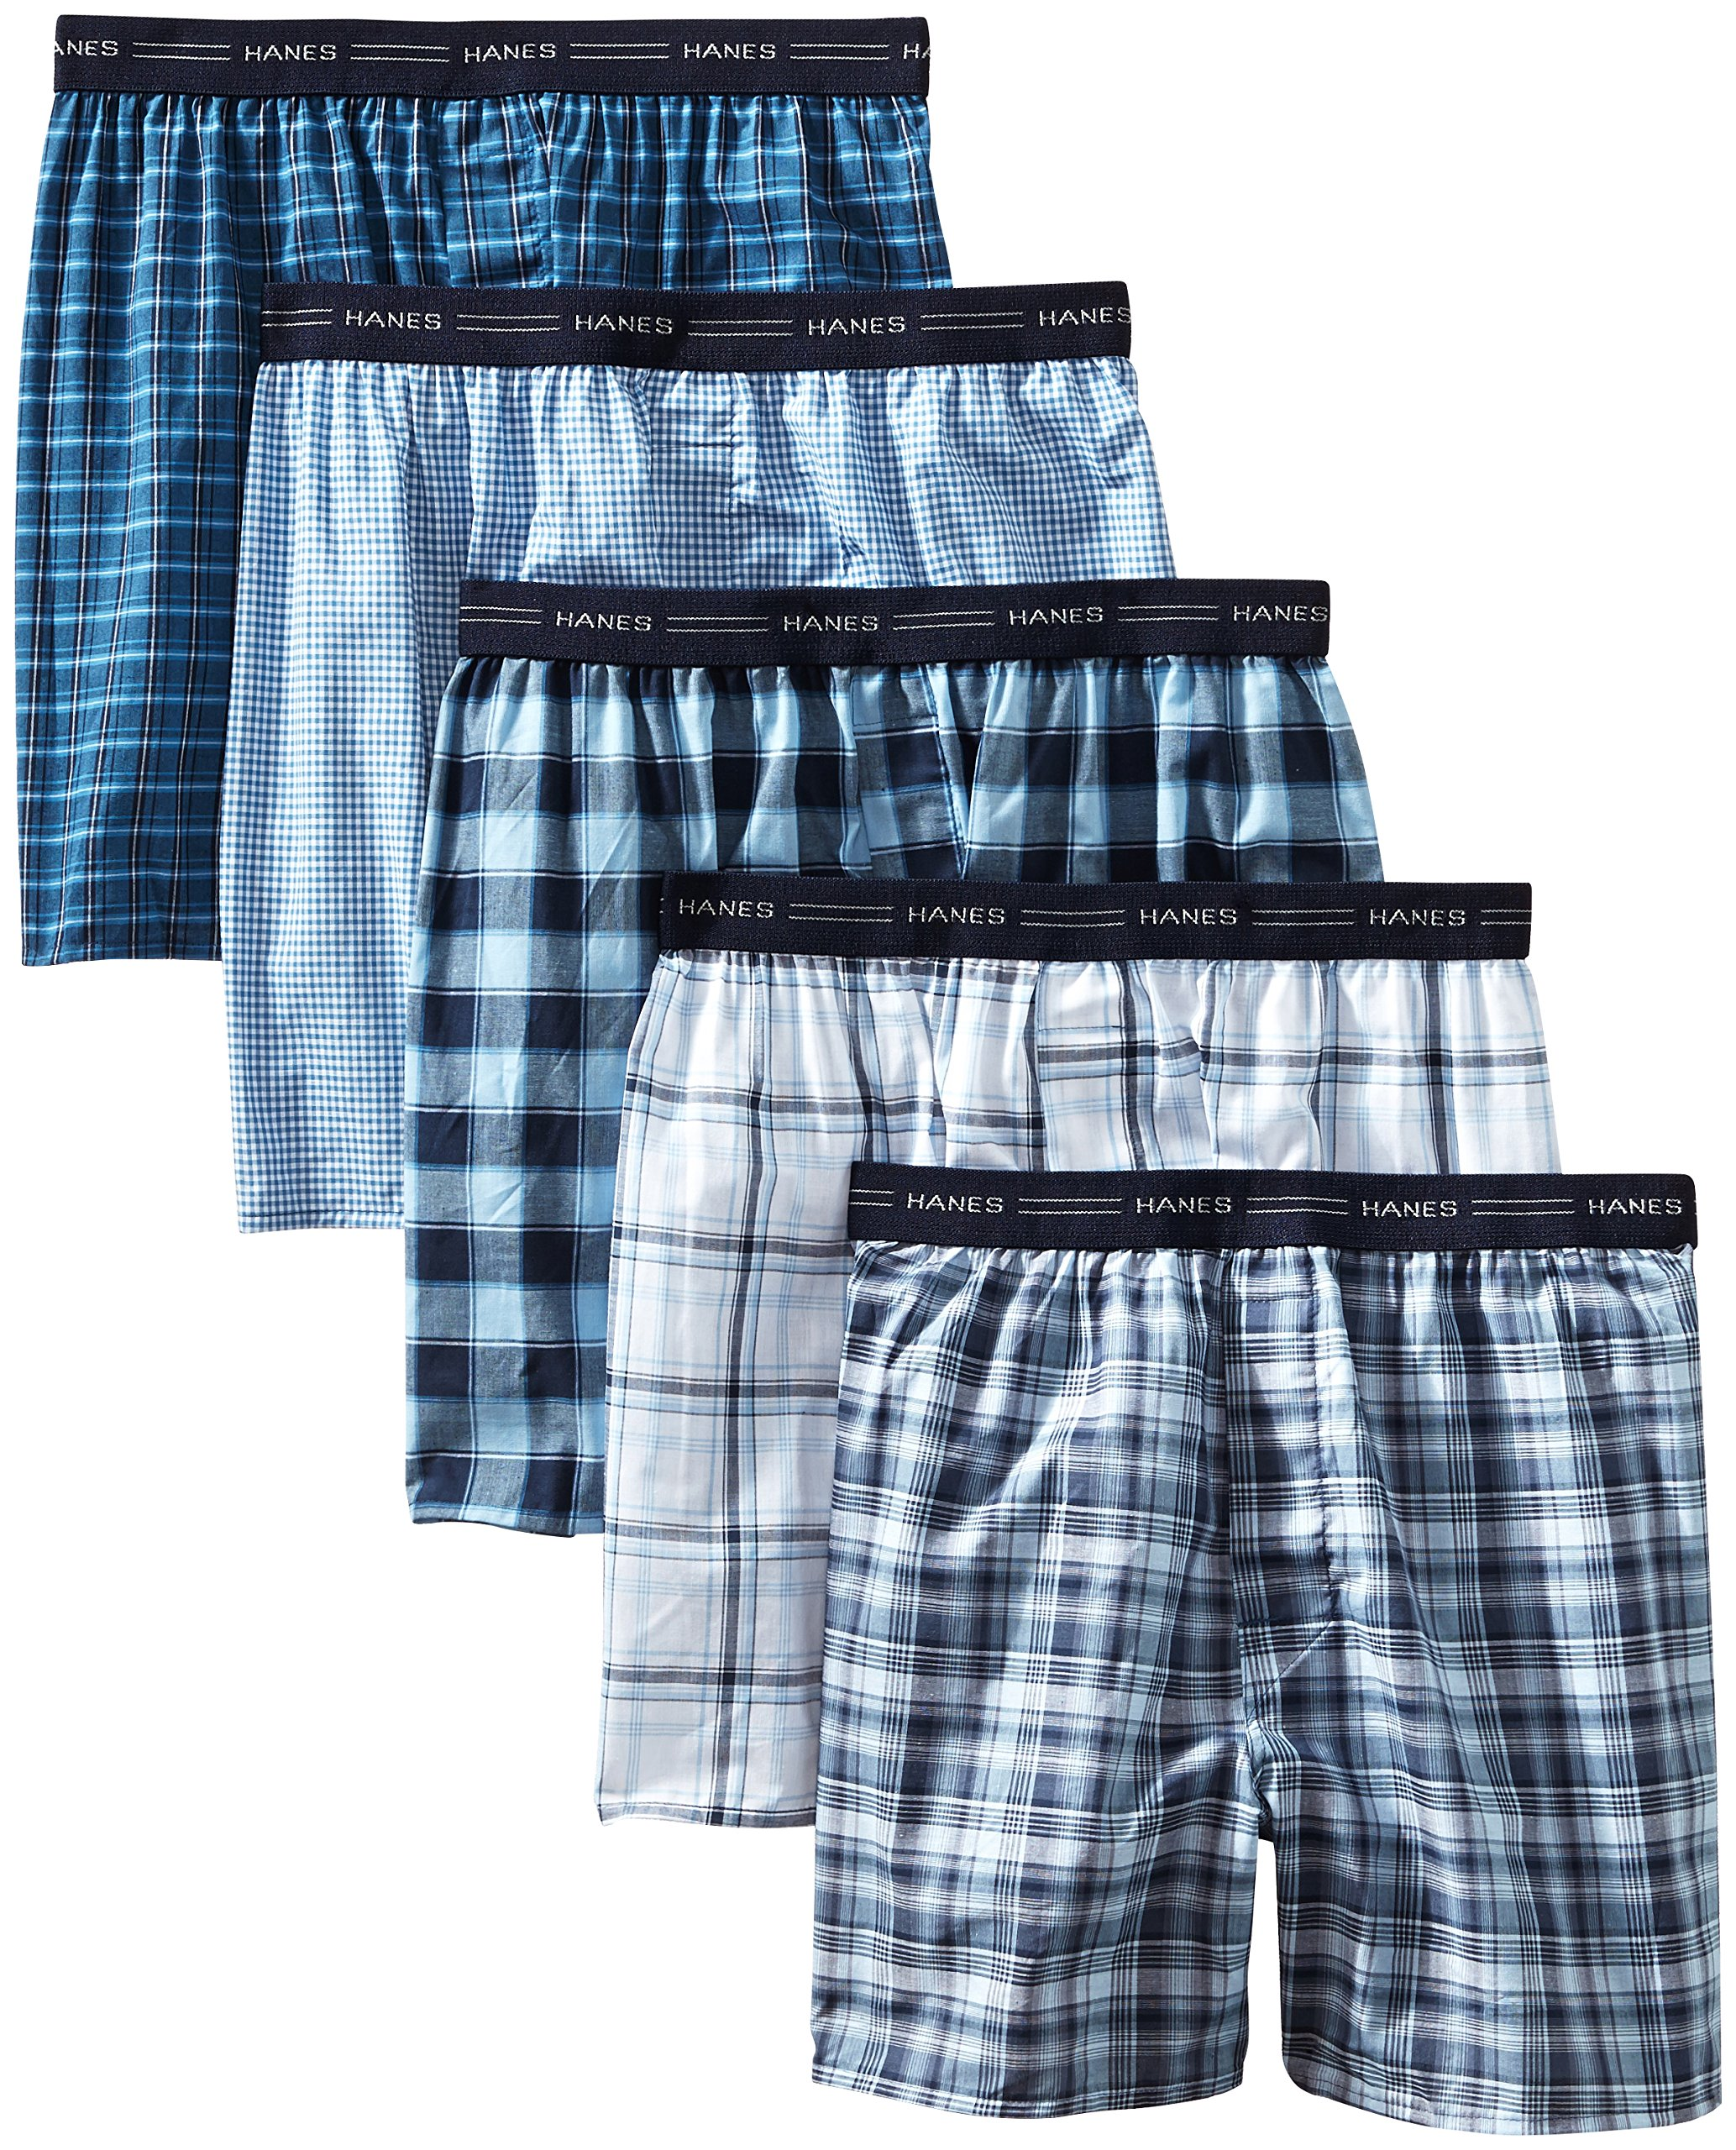 Hanes Men's 5-Pack Tagless, Tartan Boxer with Exposed Waistband, Assorted, Medium by Hanes